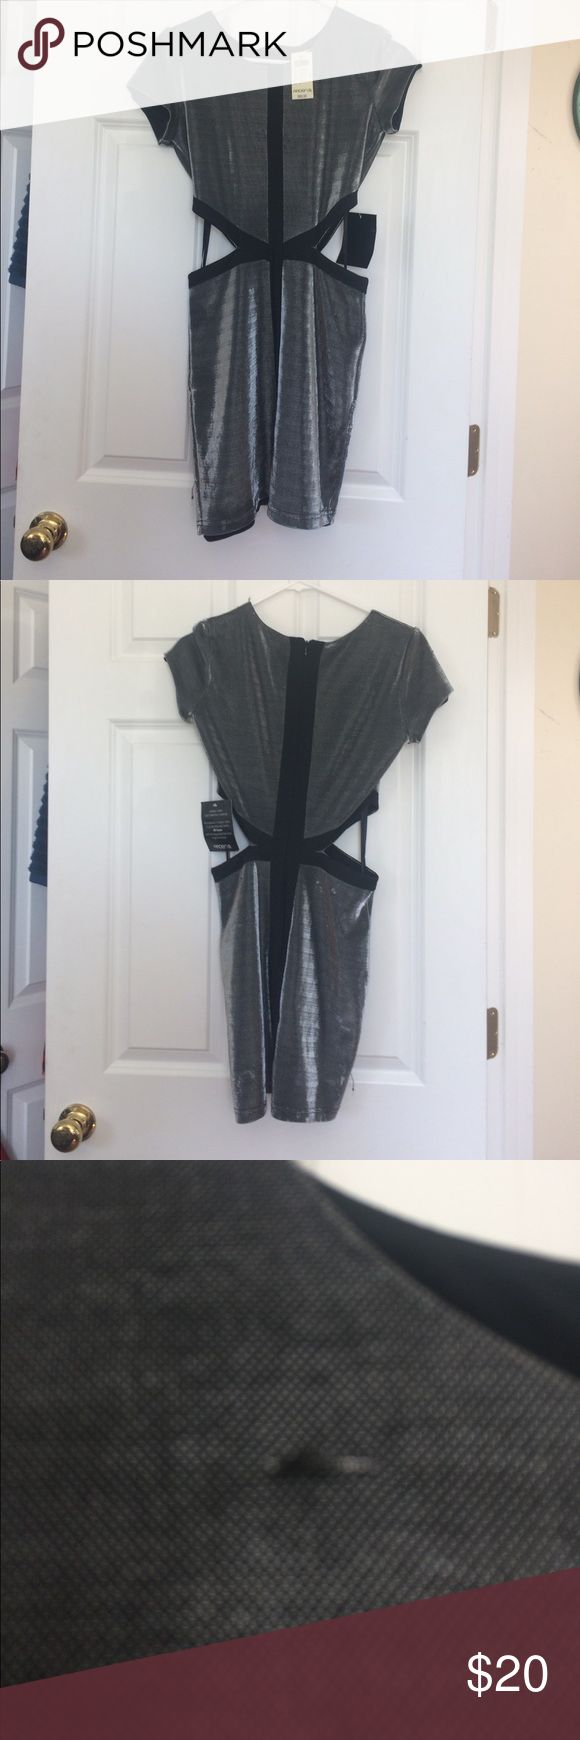 Dress Metallic silver dress with cutouts NWT never worn had some pulls that are pictured when purchased zipper down the back great going out dress! Arden B Dresses Mini